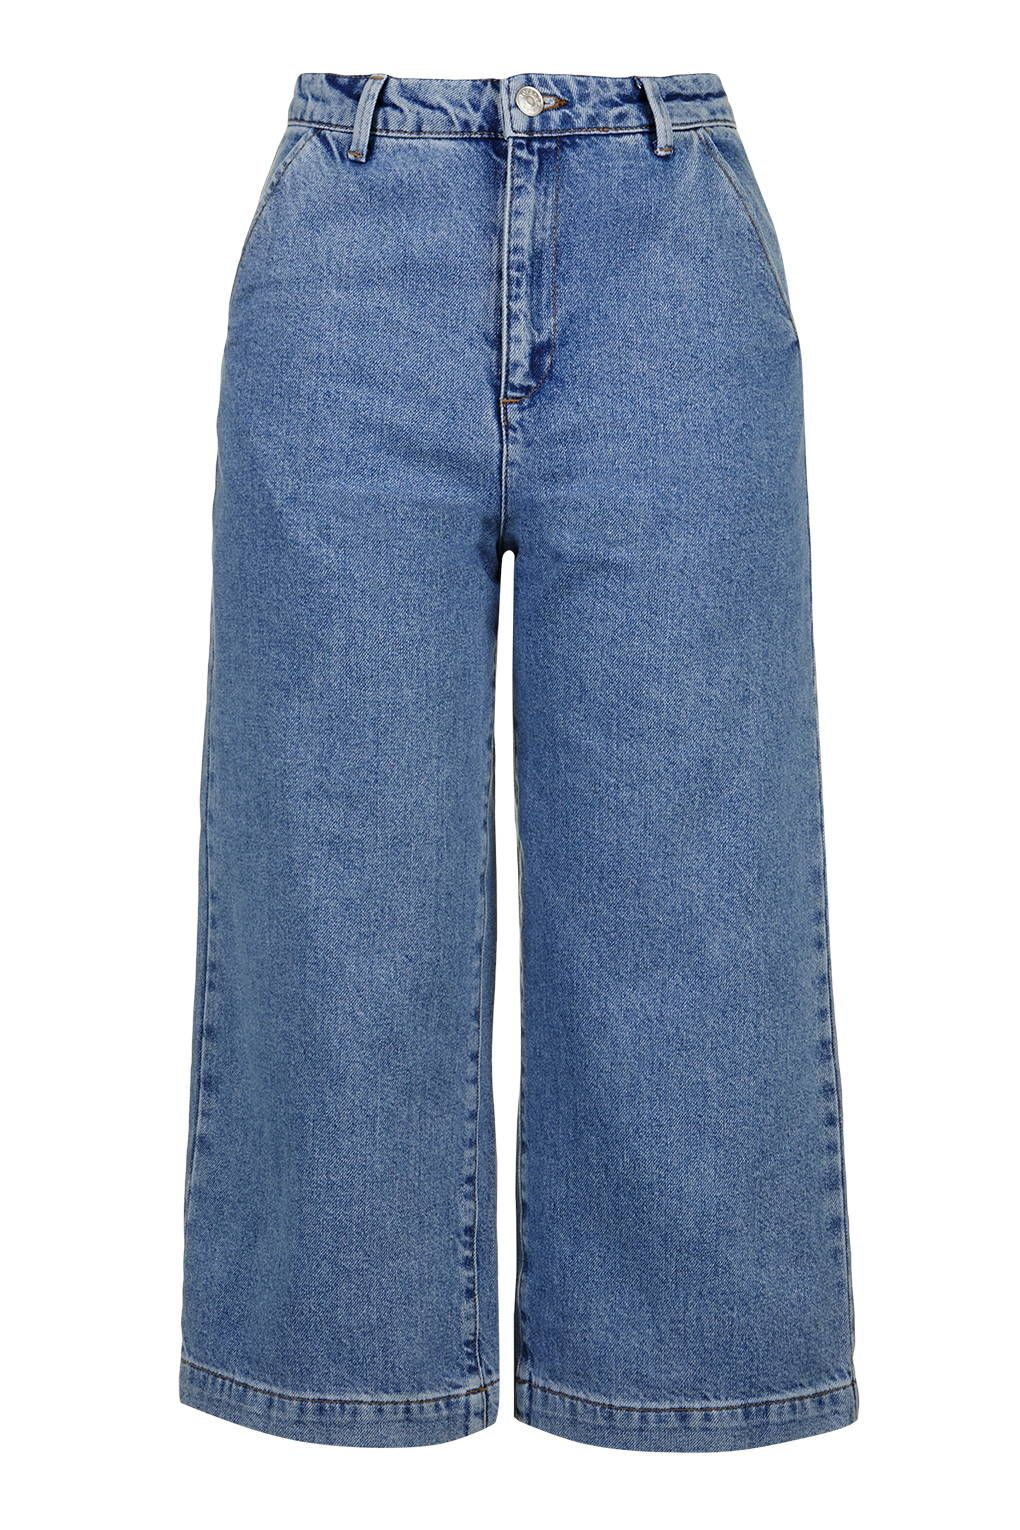 Photo 1 of PETITE MOTO Denim Culottes